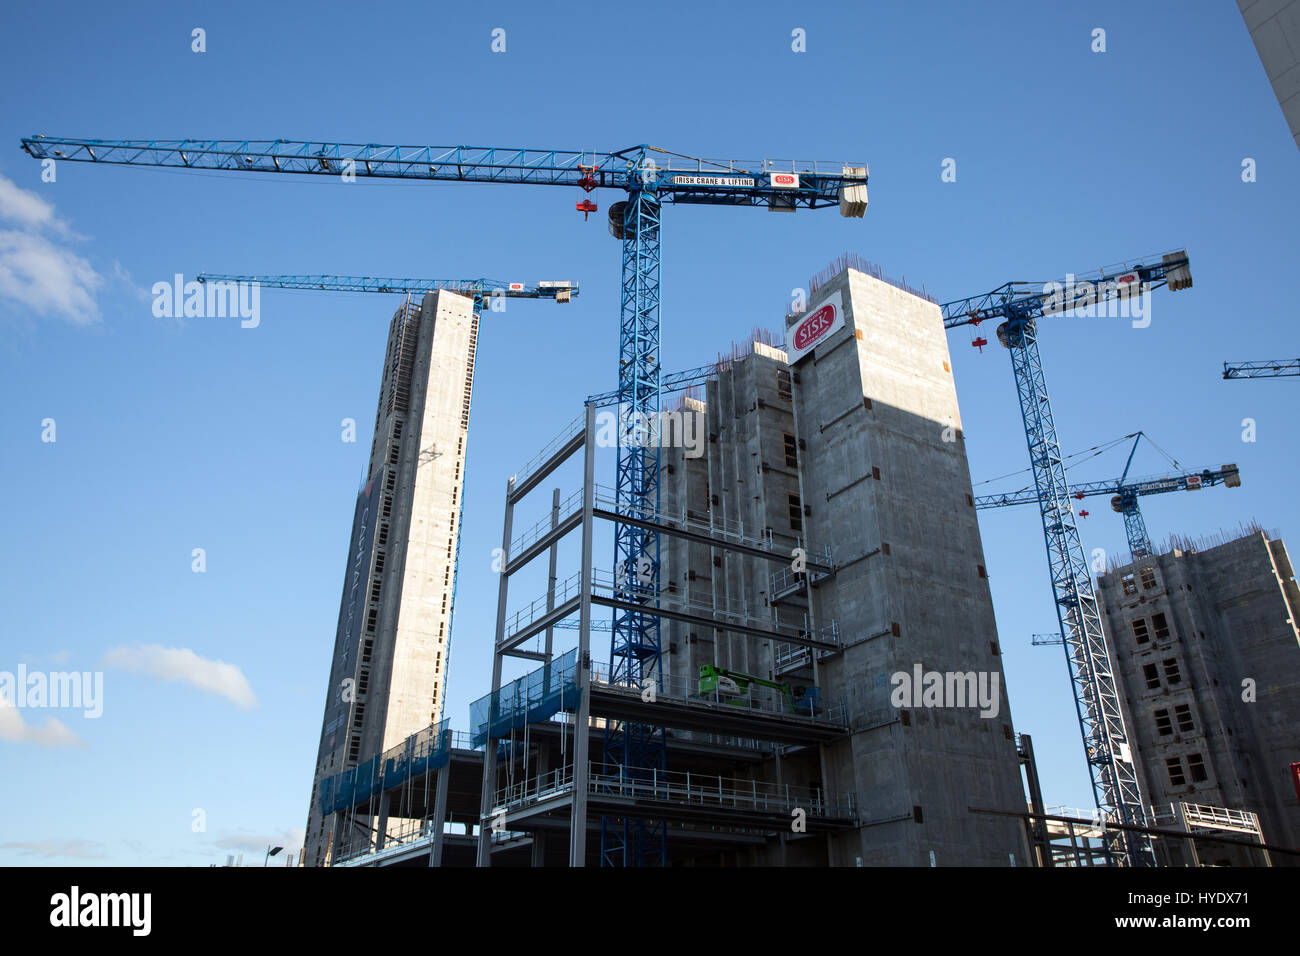 Construction work in the Dublin city docklands, Ireland. - Stock Image